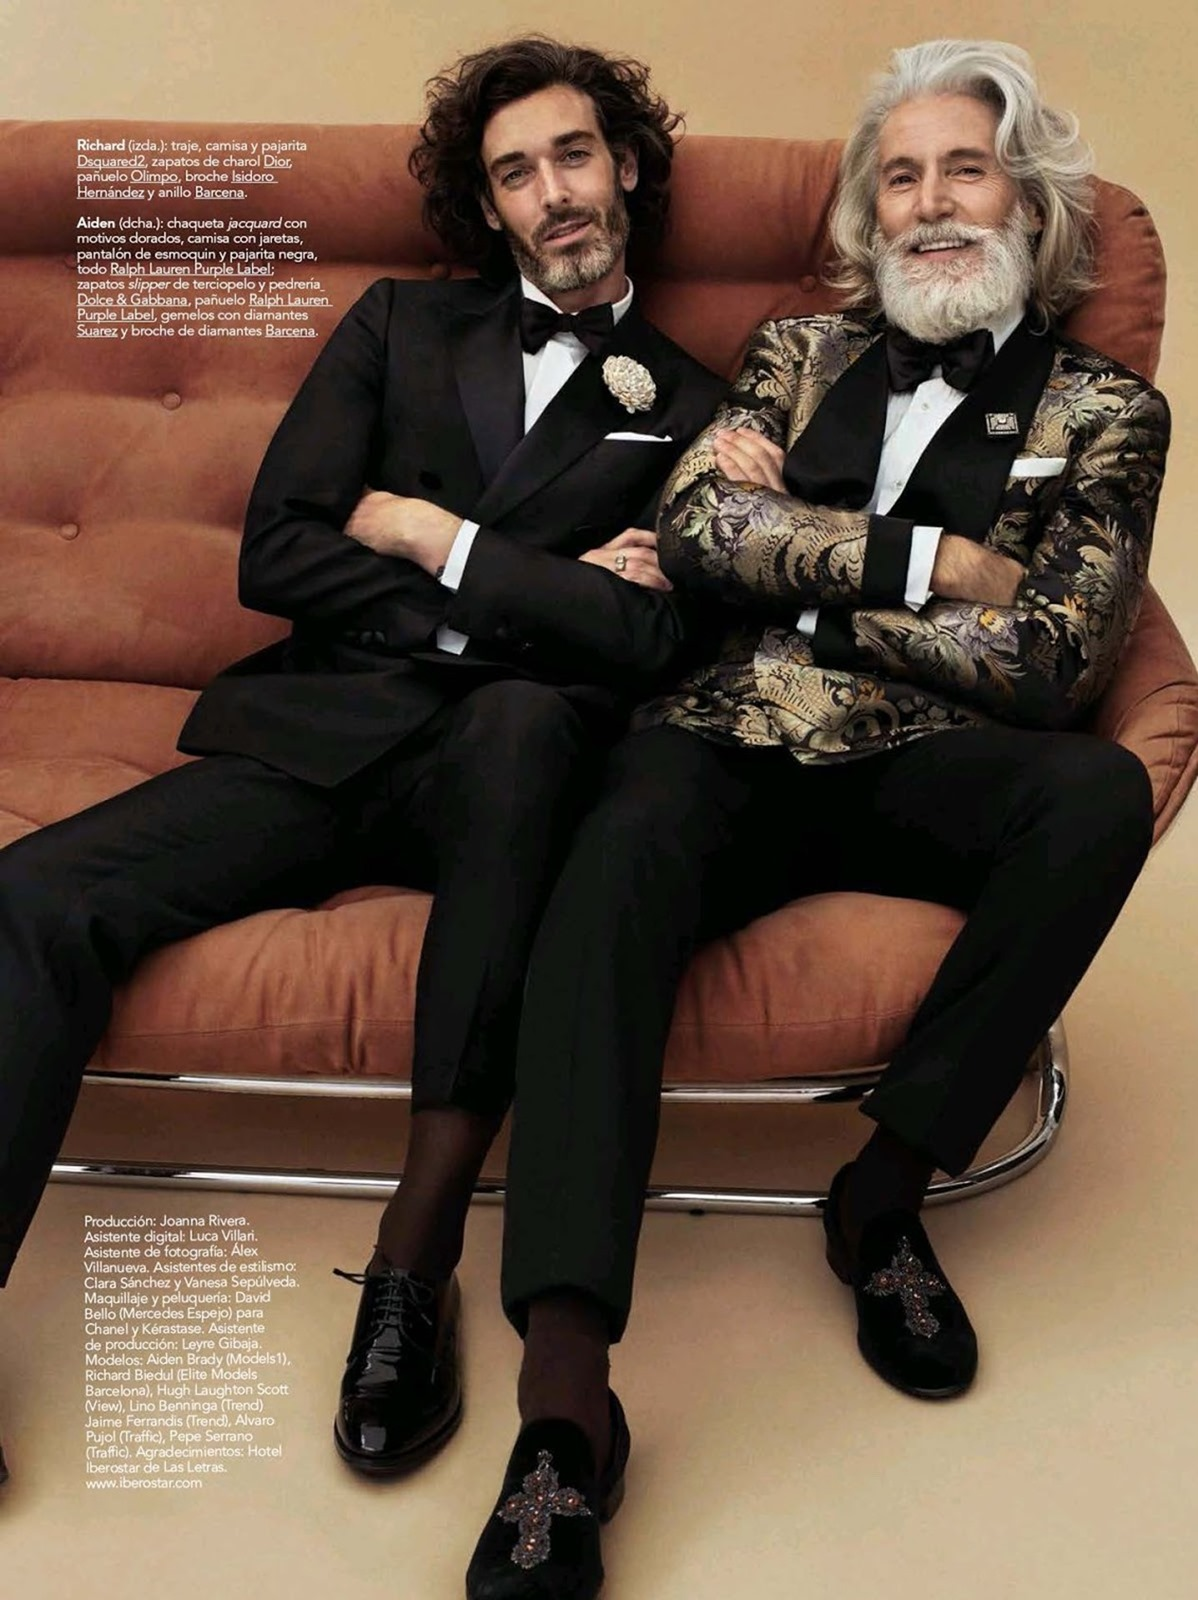 GQ SPAIN: Three Generations by Sergi Pons – Image Amplified